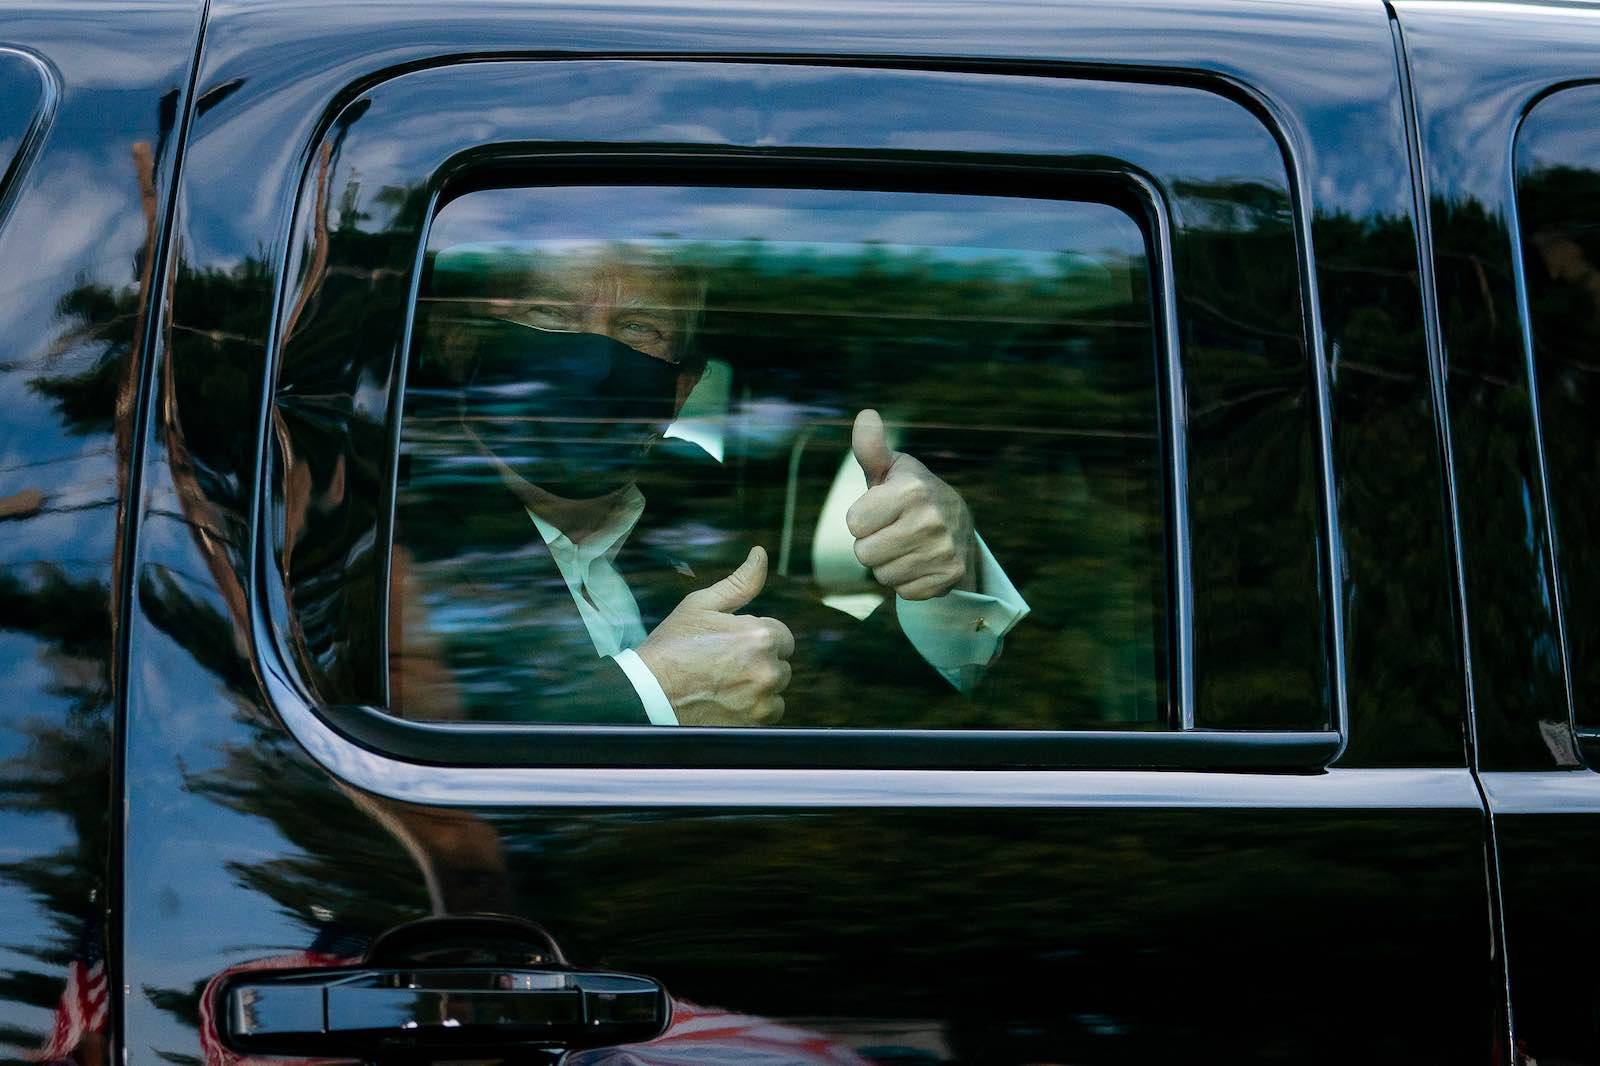 A drive-by while undergoing hospital treatment for Covid-19, 4 October 2020 in Bethesda, Maryland (The White House/Flickr)